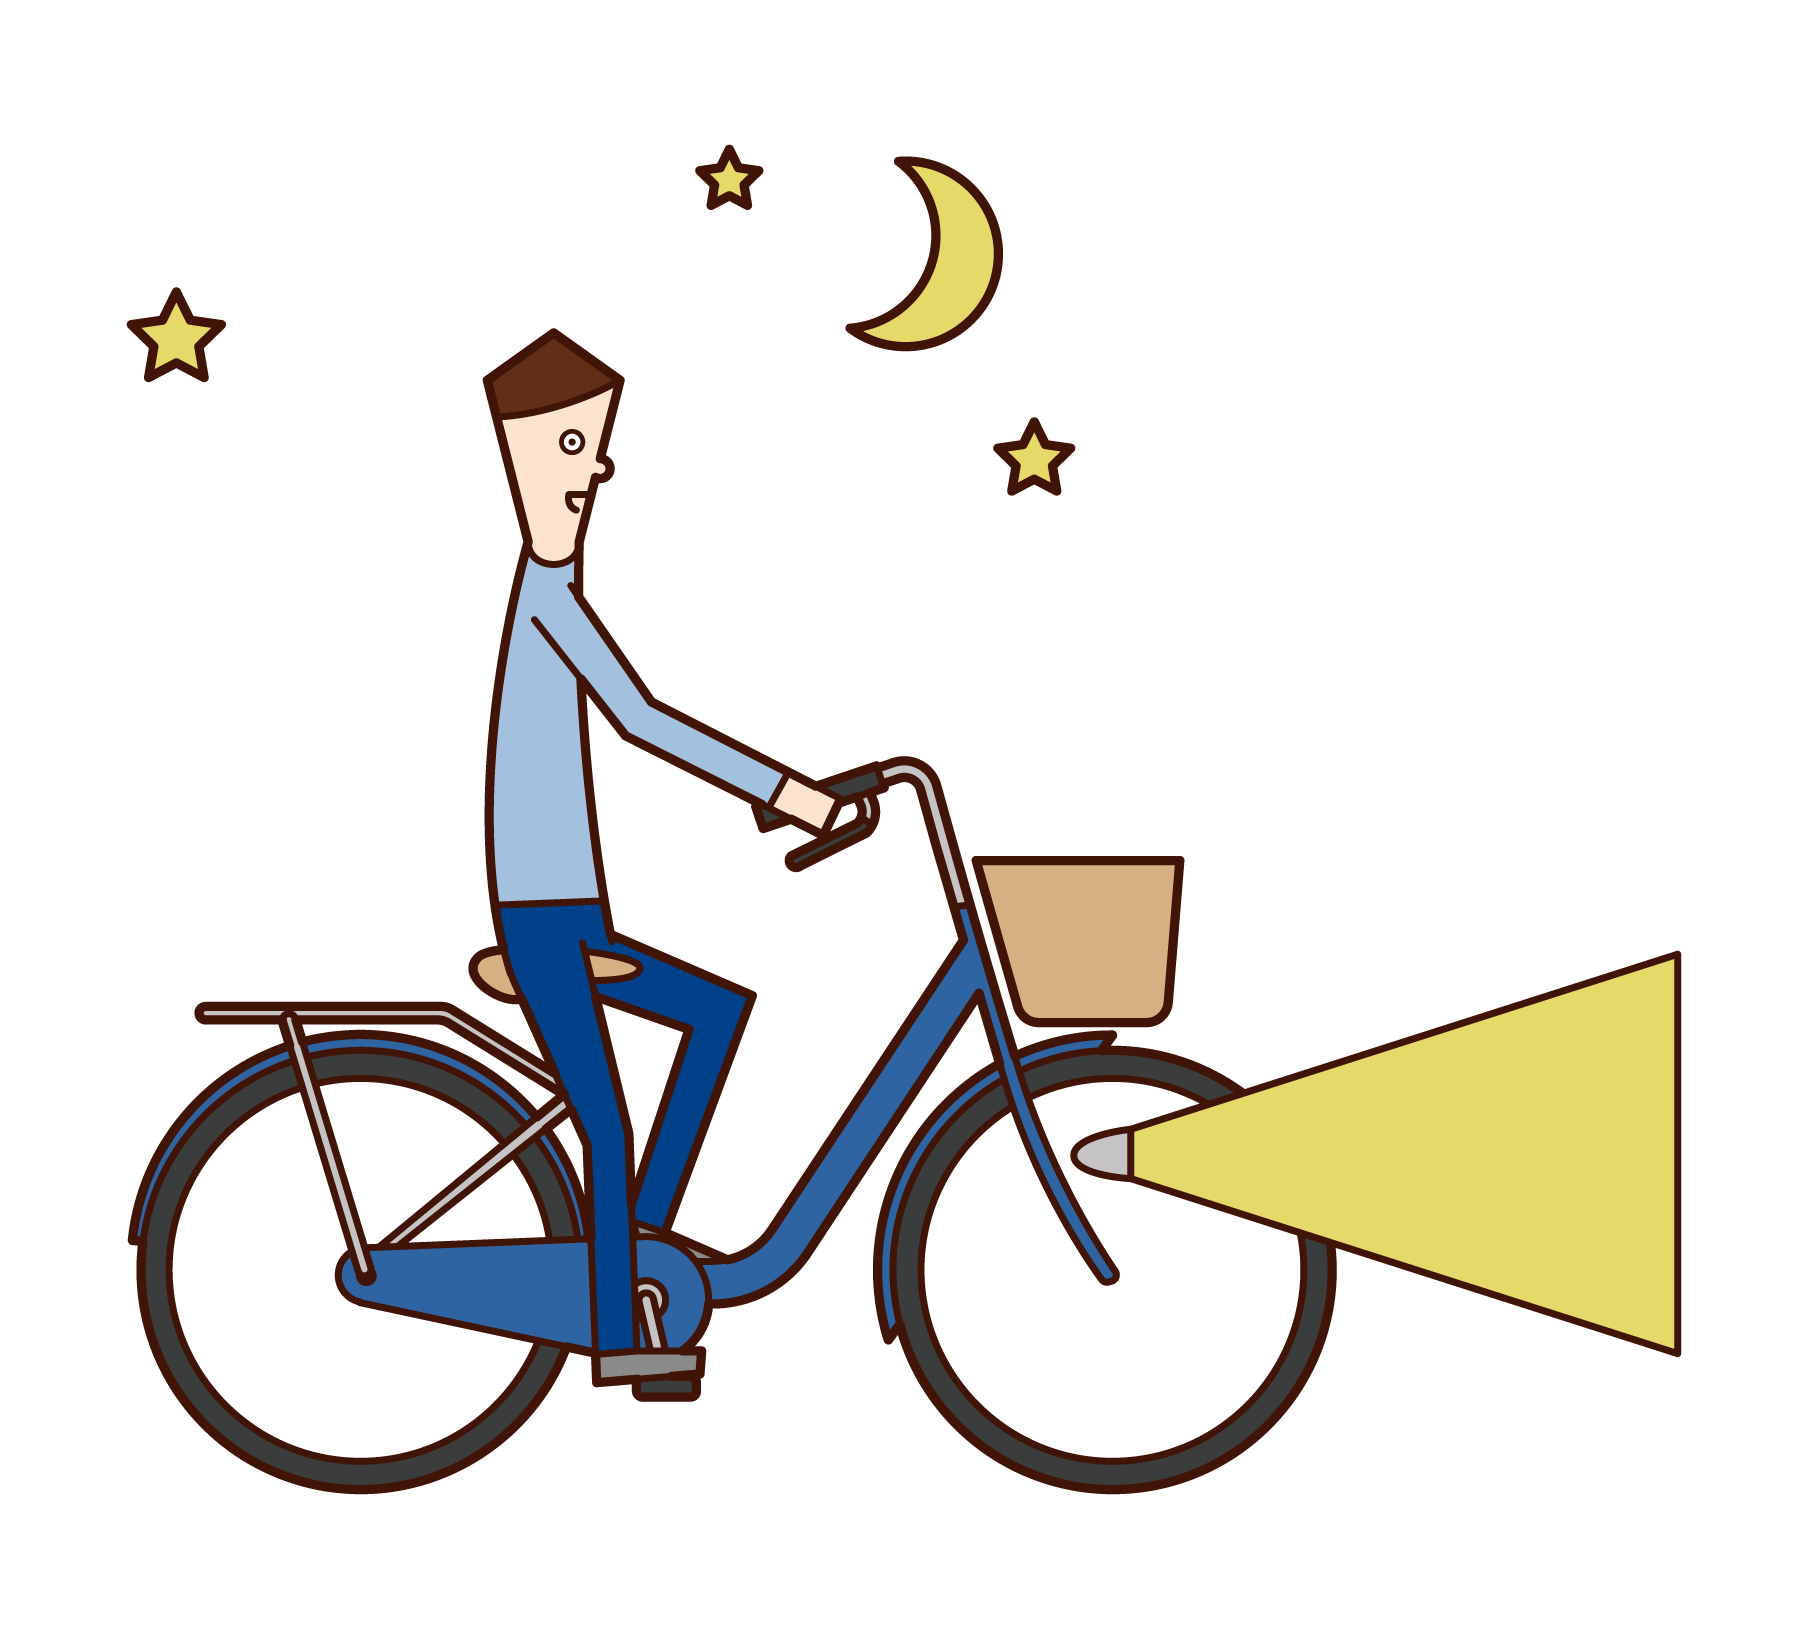 Illustration of a man riding a bicycle with a light on it